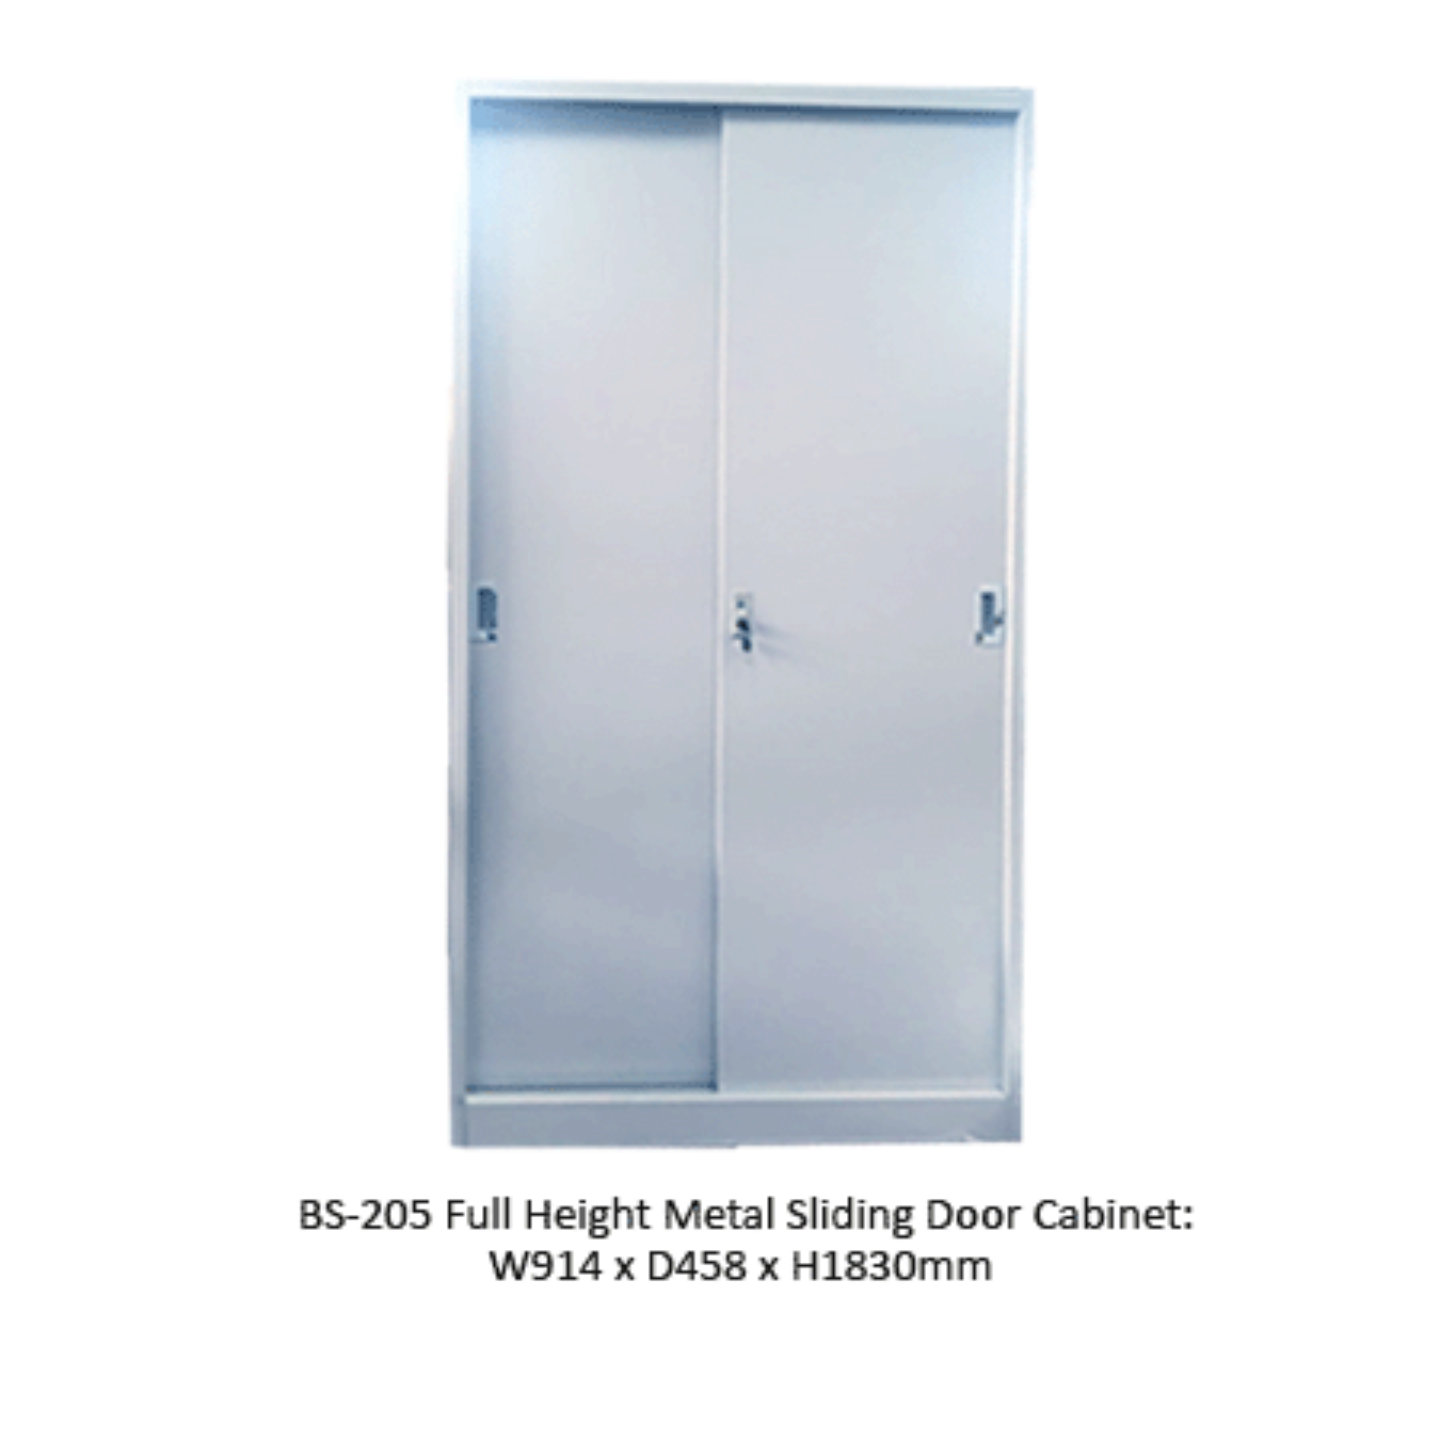 BS-205 Full Height Sliding Door Cabinet c/w 4 Shelves (Col. Grey)